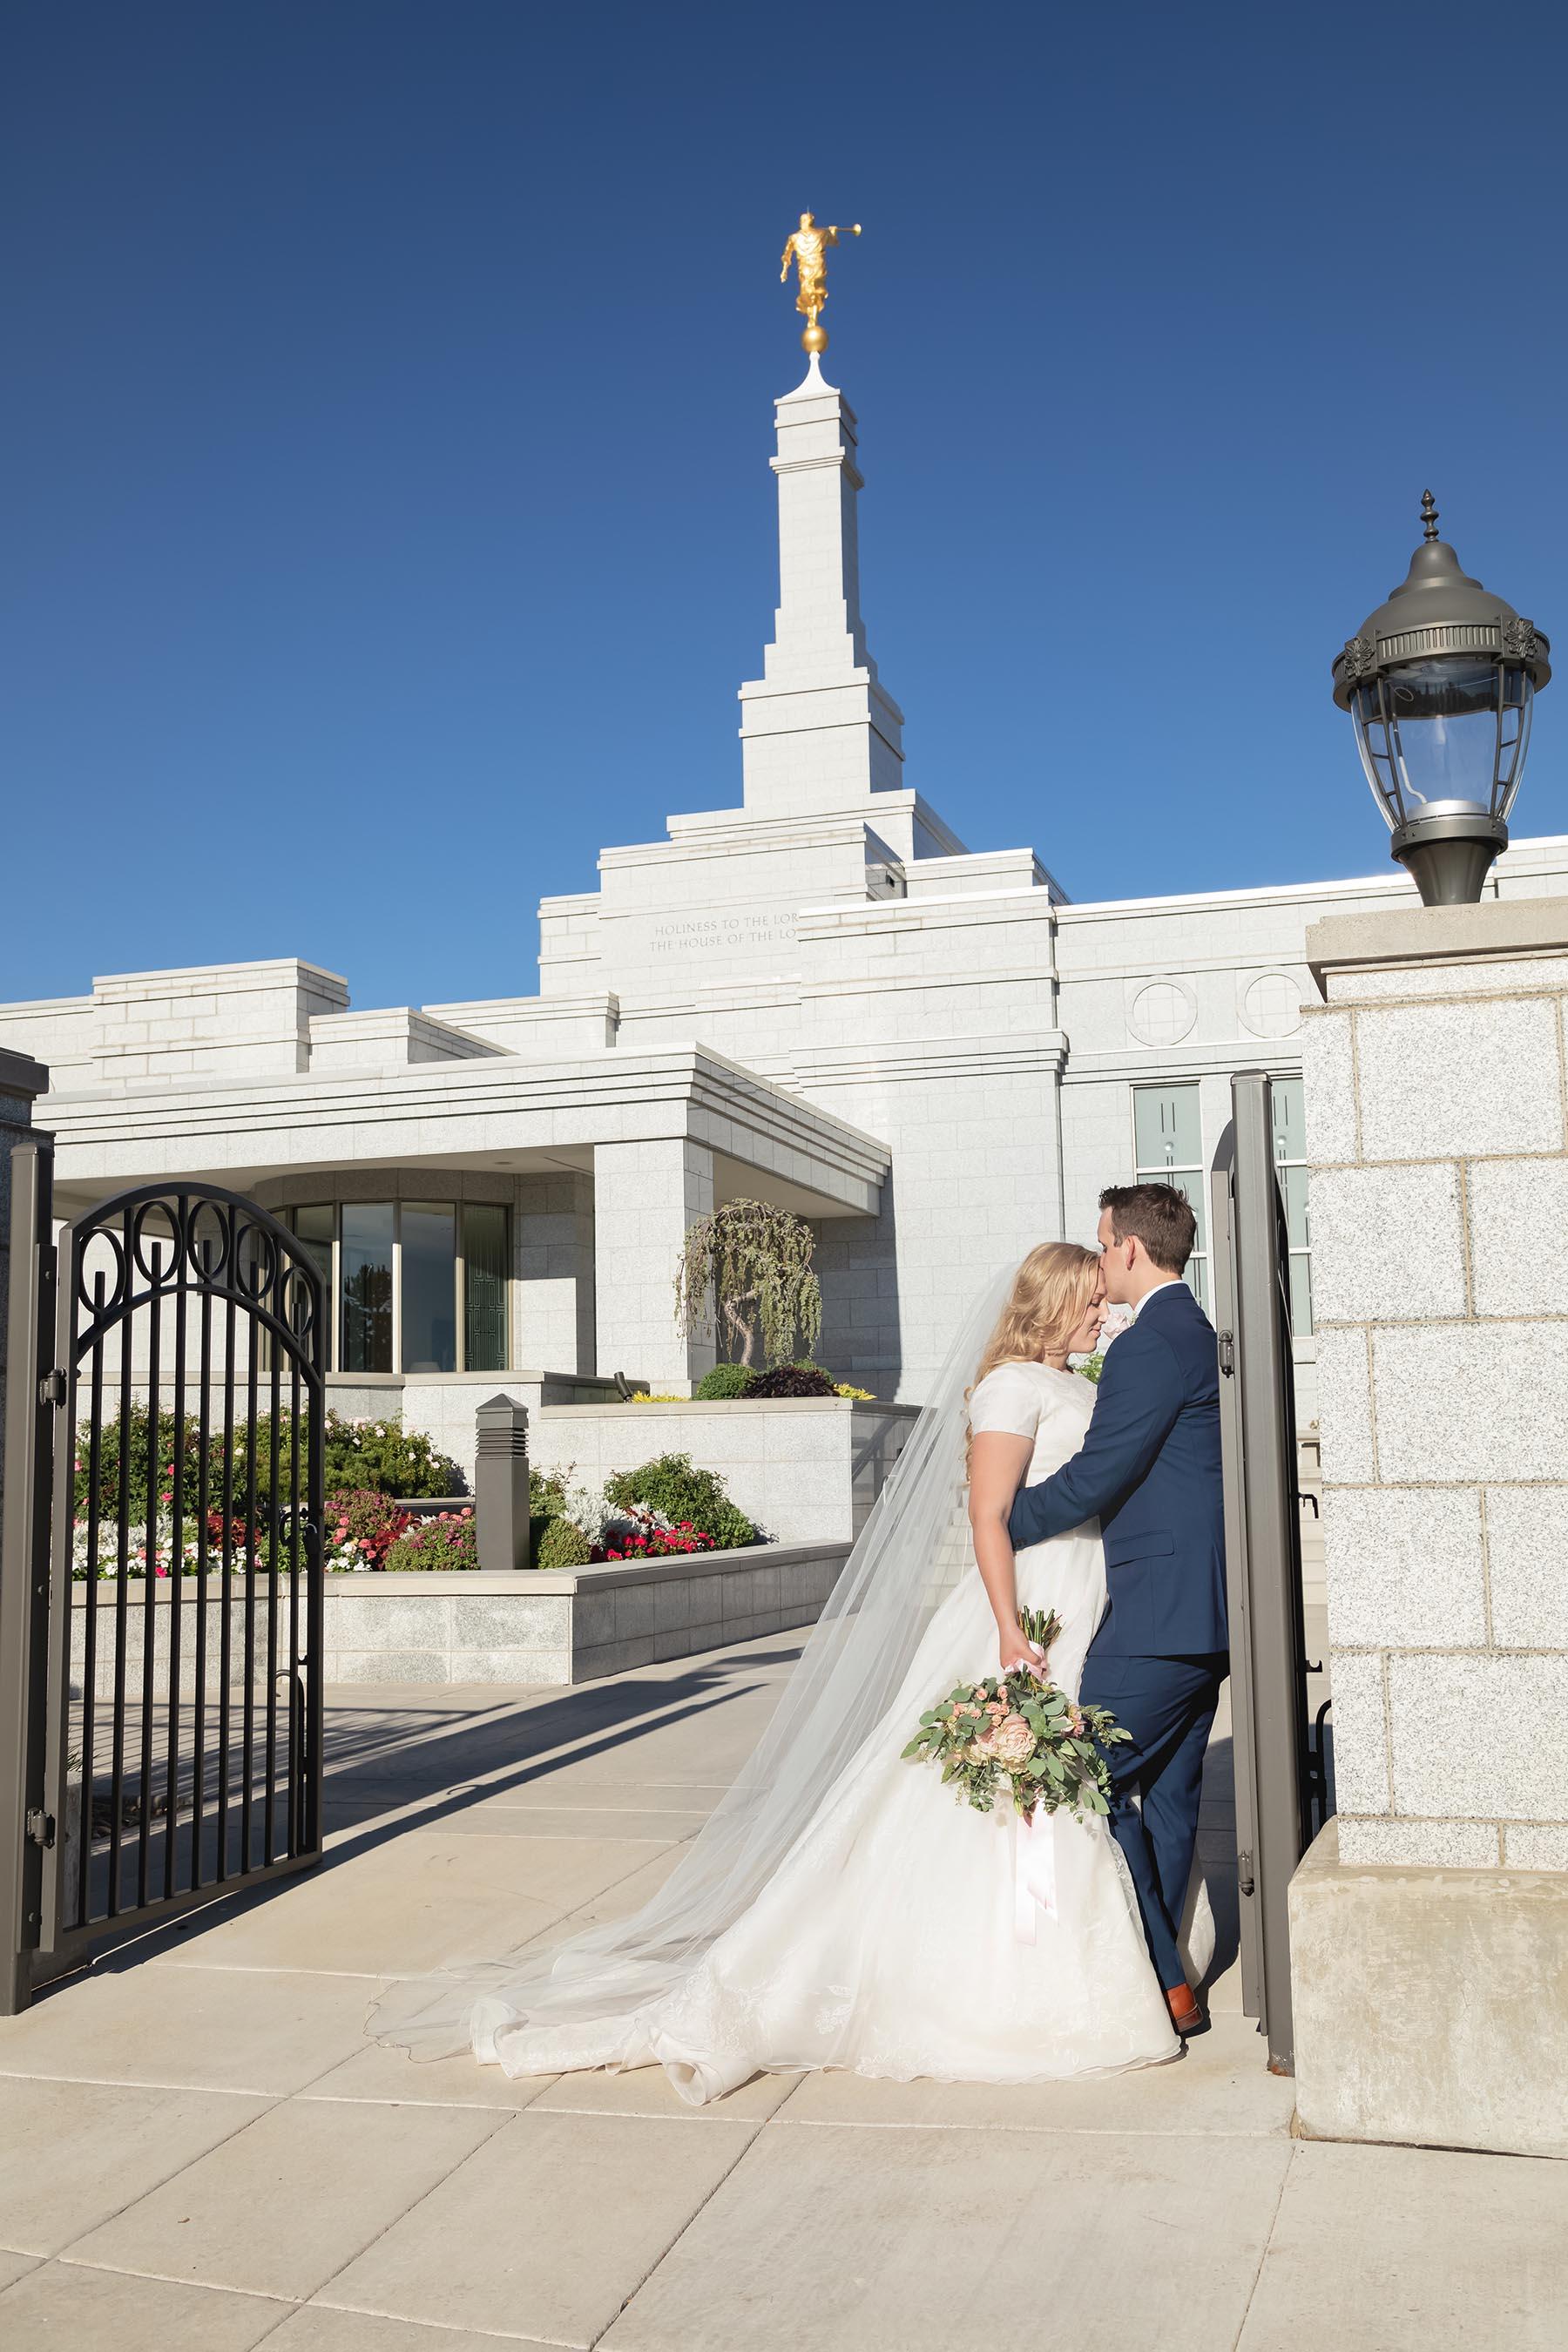 Christian and Ali's Reno LDS Temple Wedding by Reno Tahoe Photographer